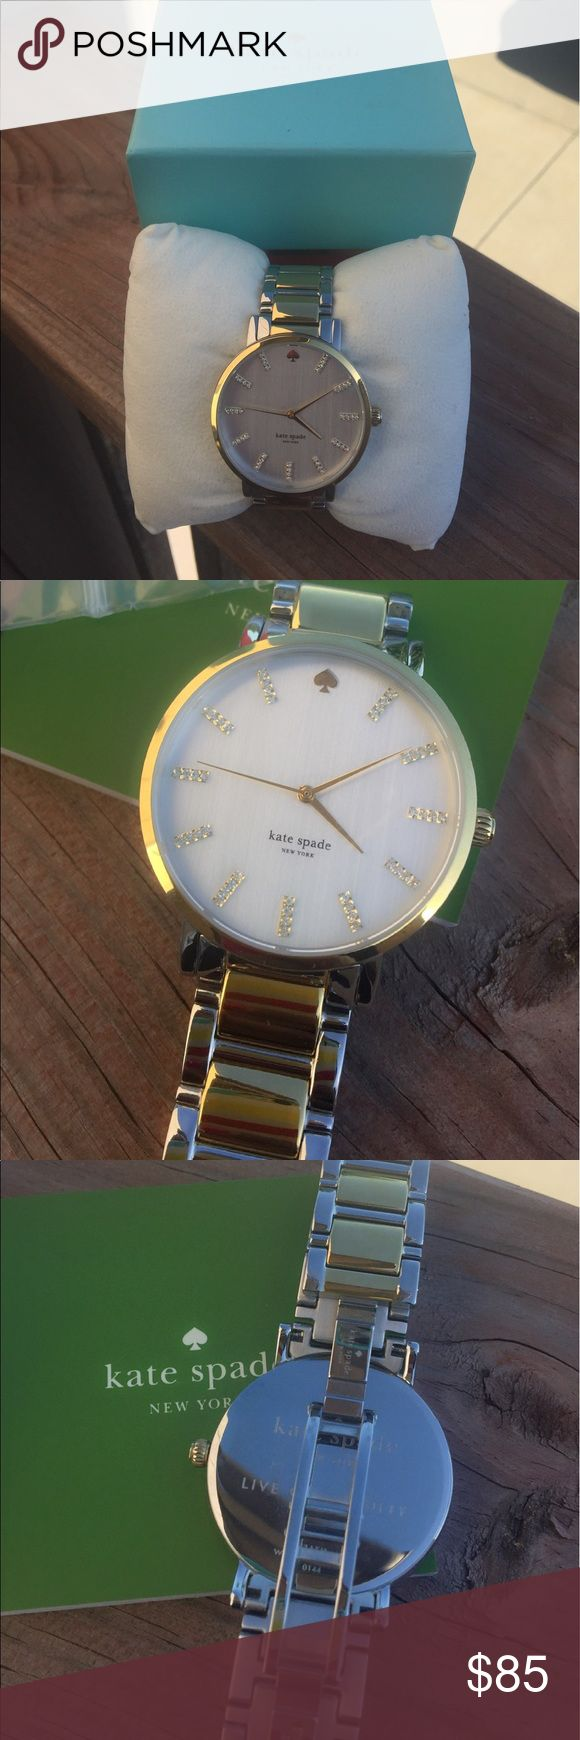 Kate Spade Gramercy Watch Authentic Kate Spade Gramercy watch. Beautiful two toned, in excellent slightly used condition. No scratches  or discoloration. Comes with the original box & tag. A link was removed which is also included. kate spade Accessories Watches